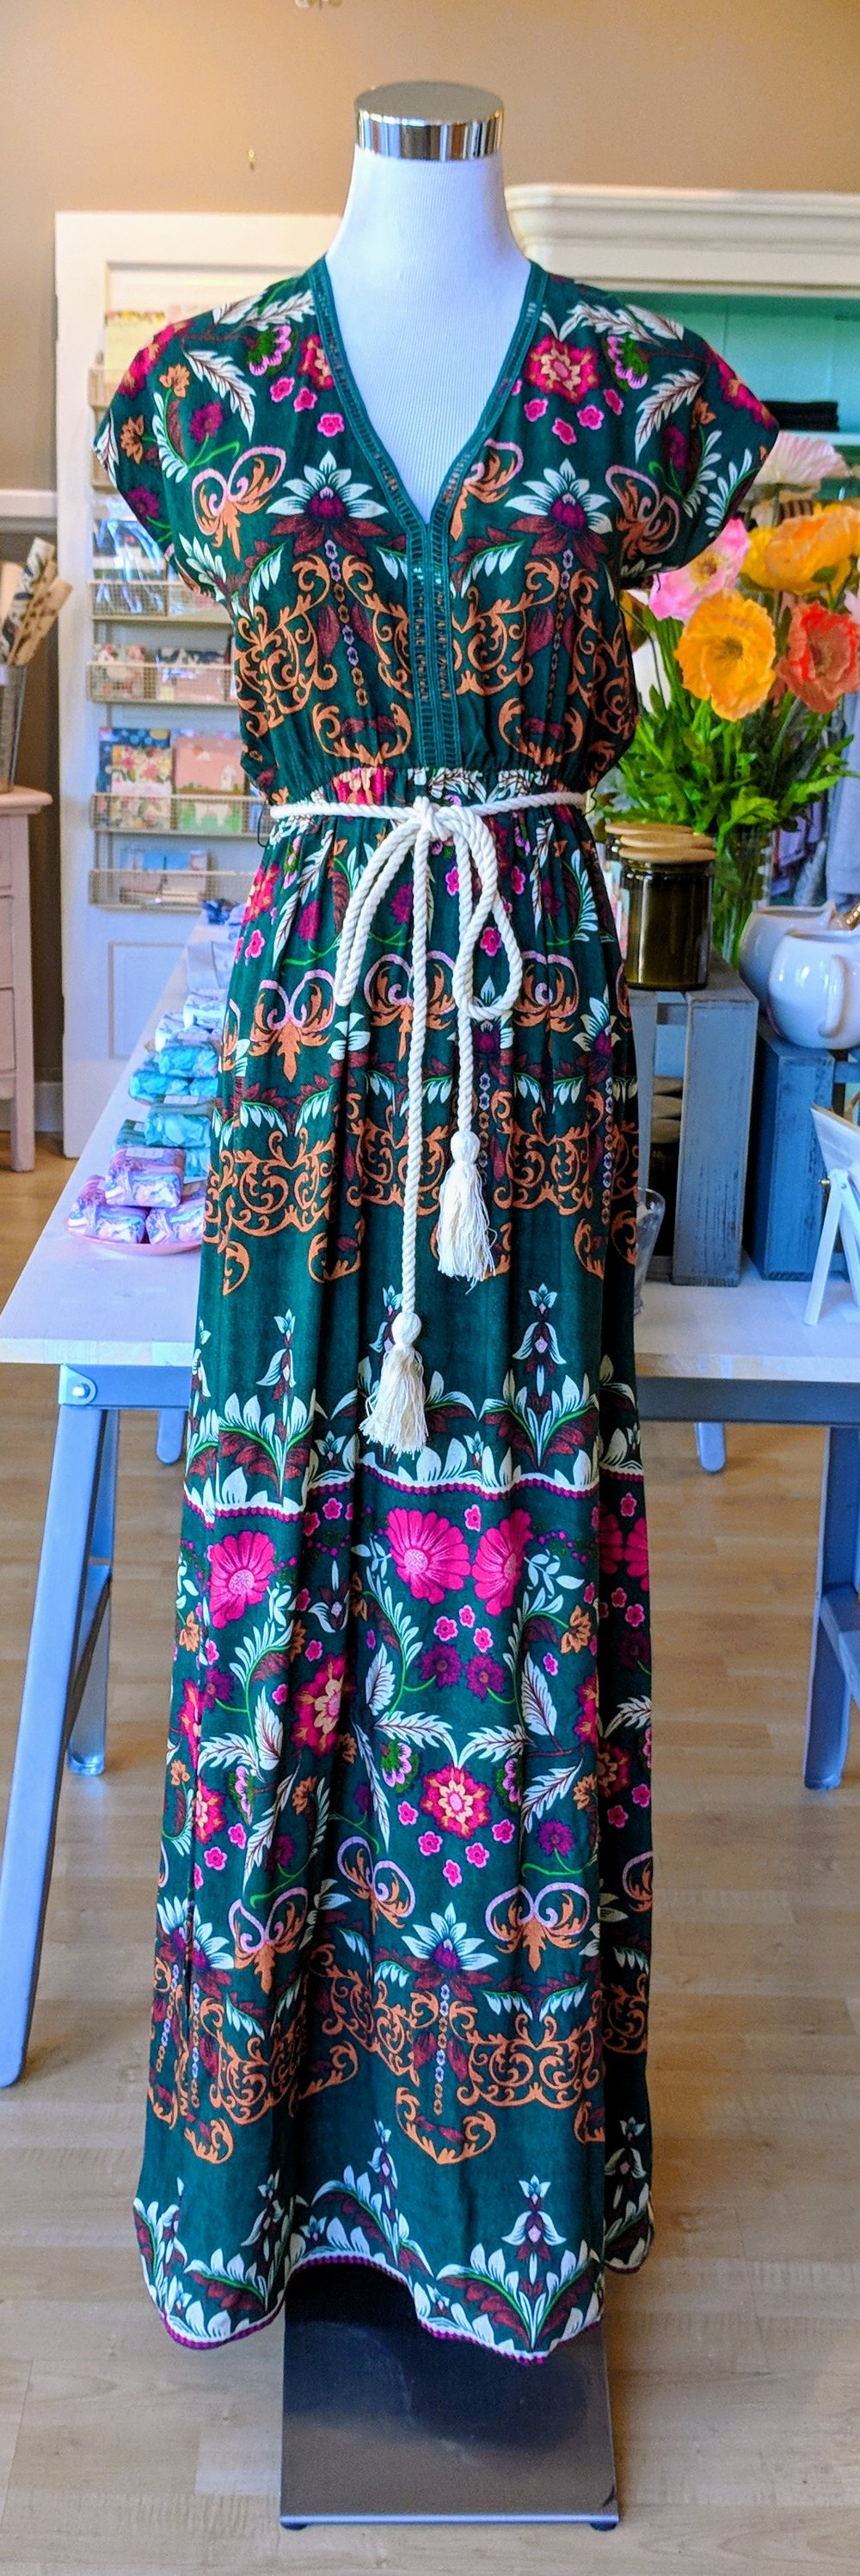 Hunter Green pattern maxi dress with rope belt.